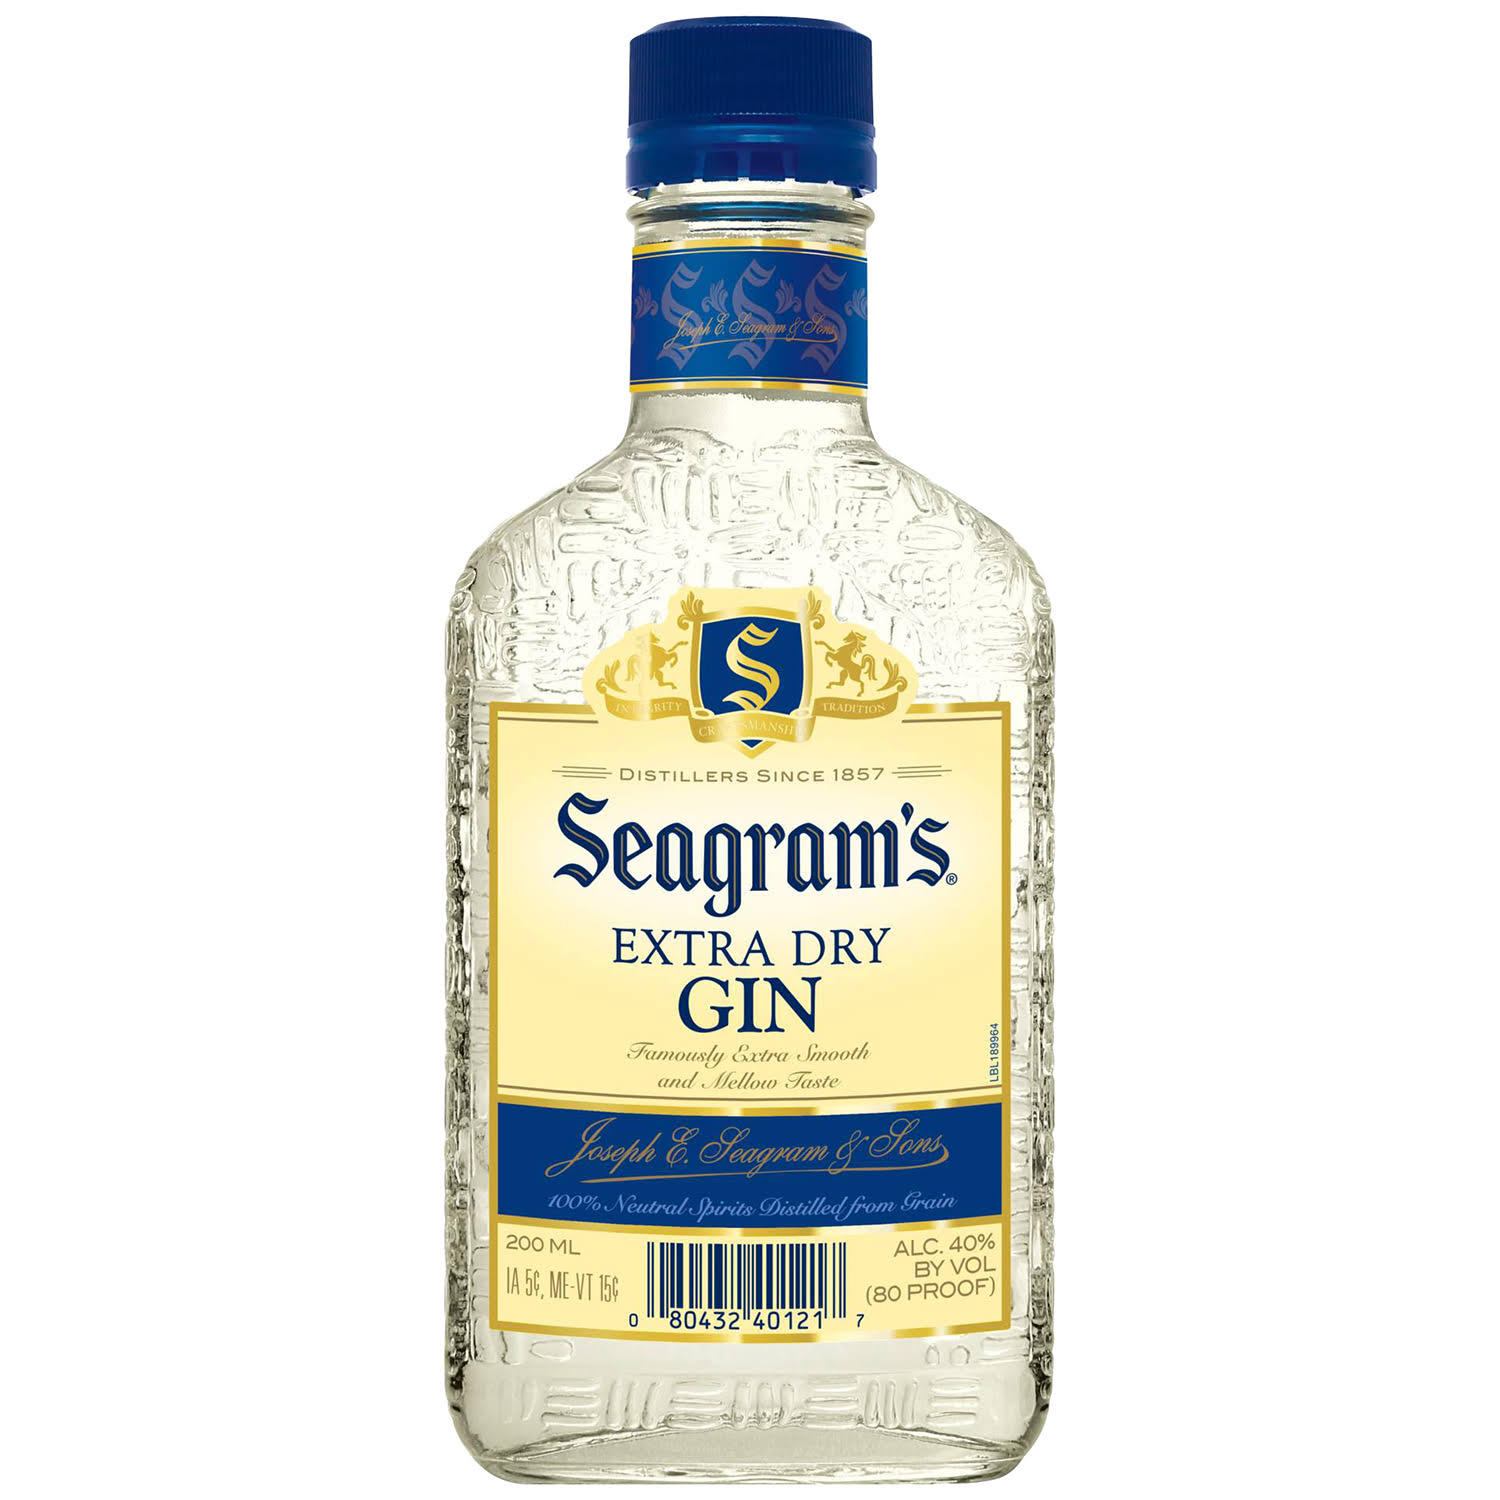 Seagram's Gin Extra Dry 200ml Bottle